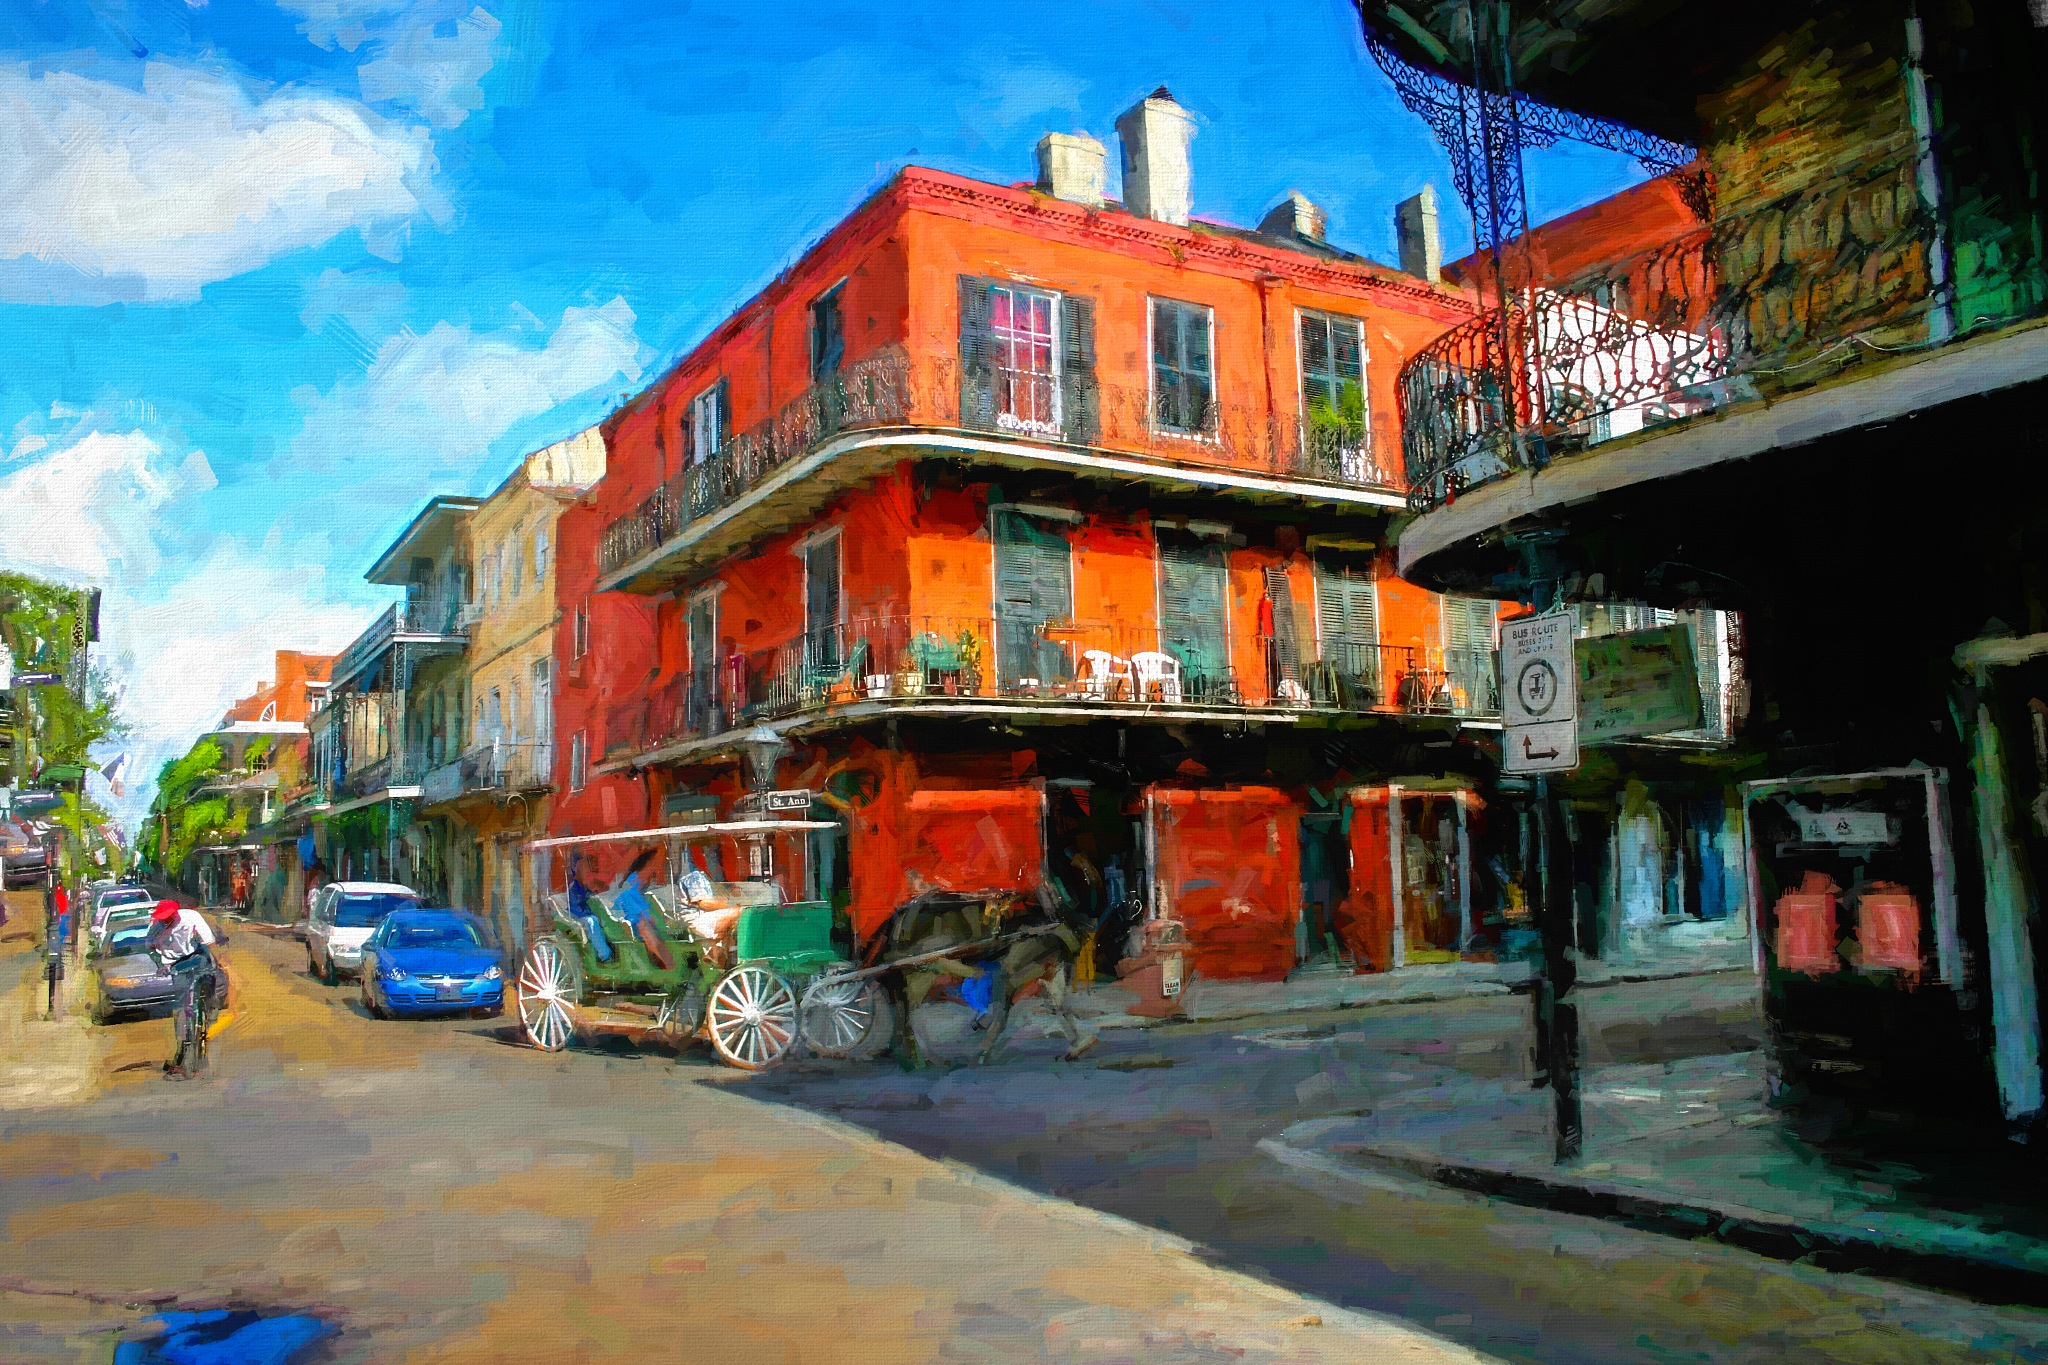 New Orleans Street Scene Painting by David Walters